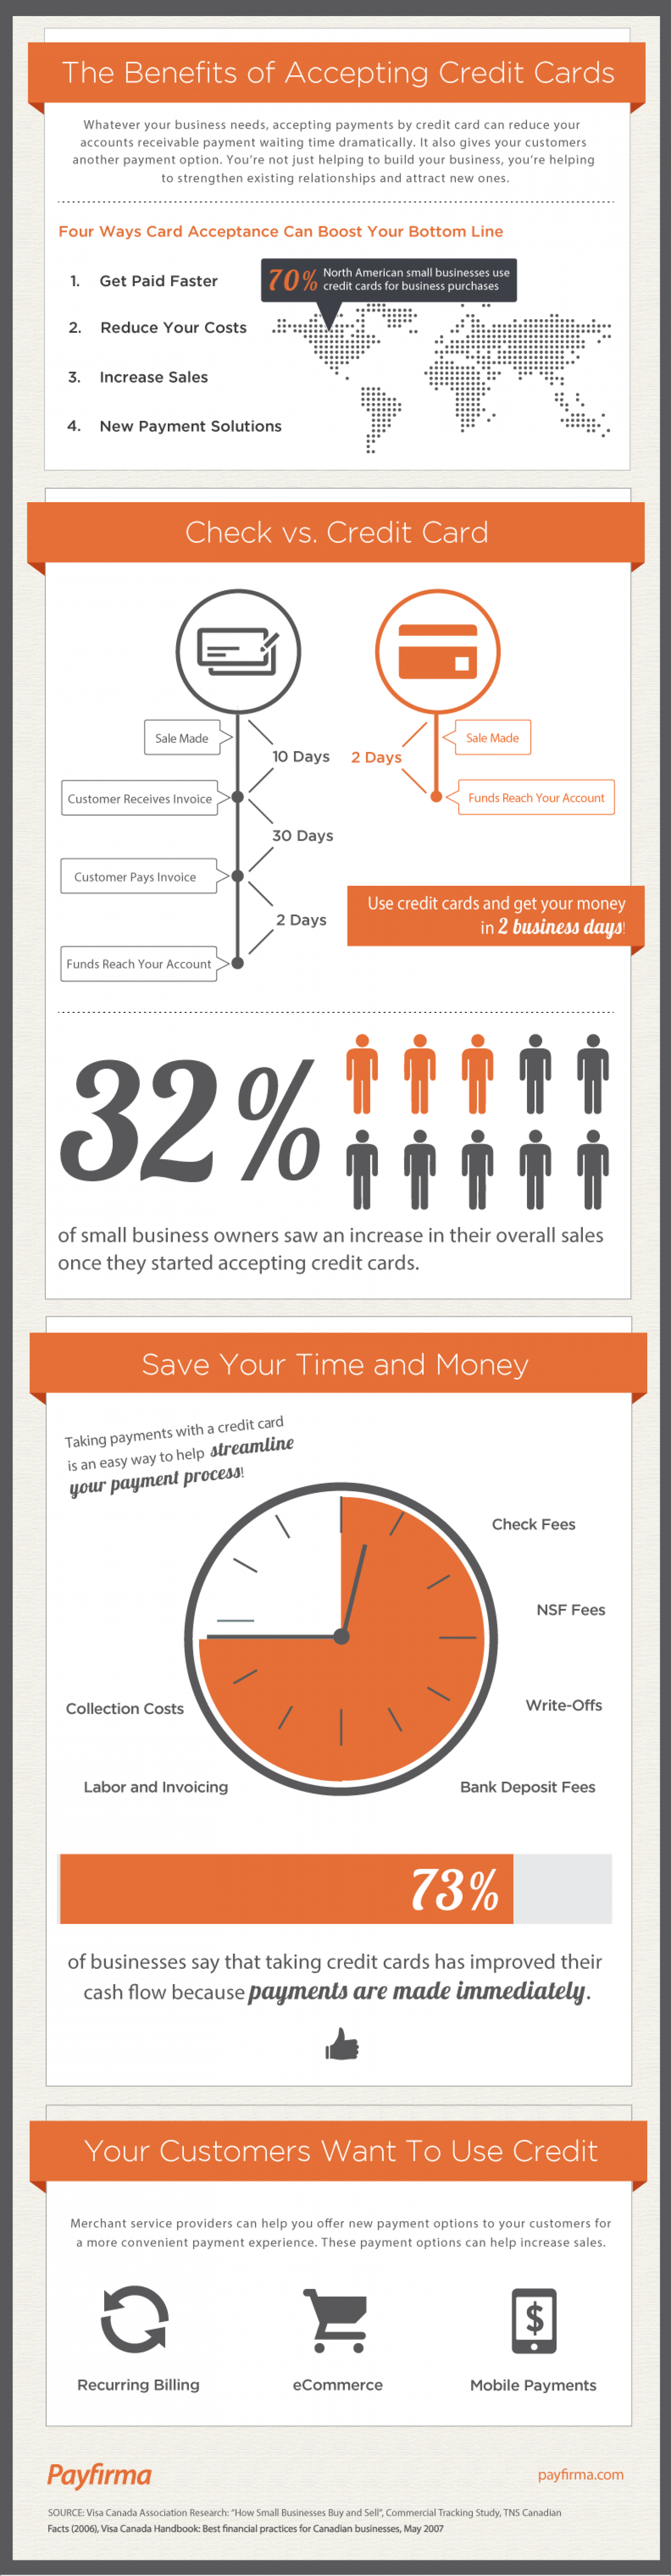 The Benefits of Accepting Credit Cards Infographic